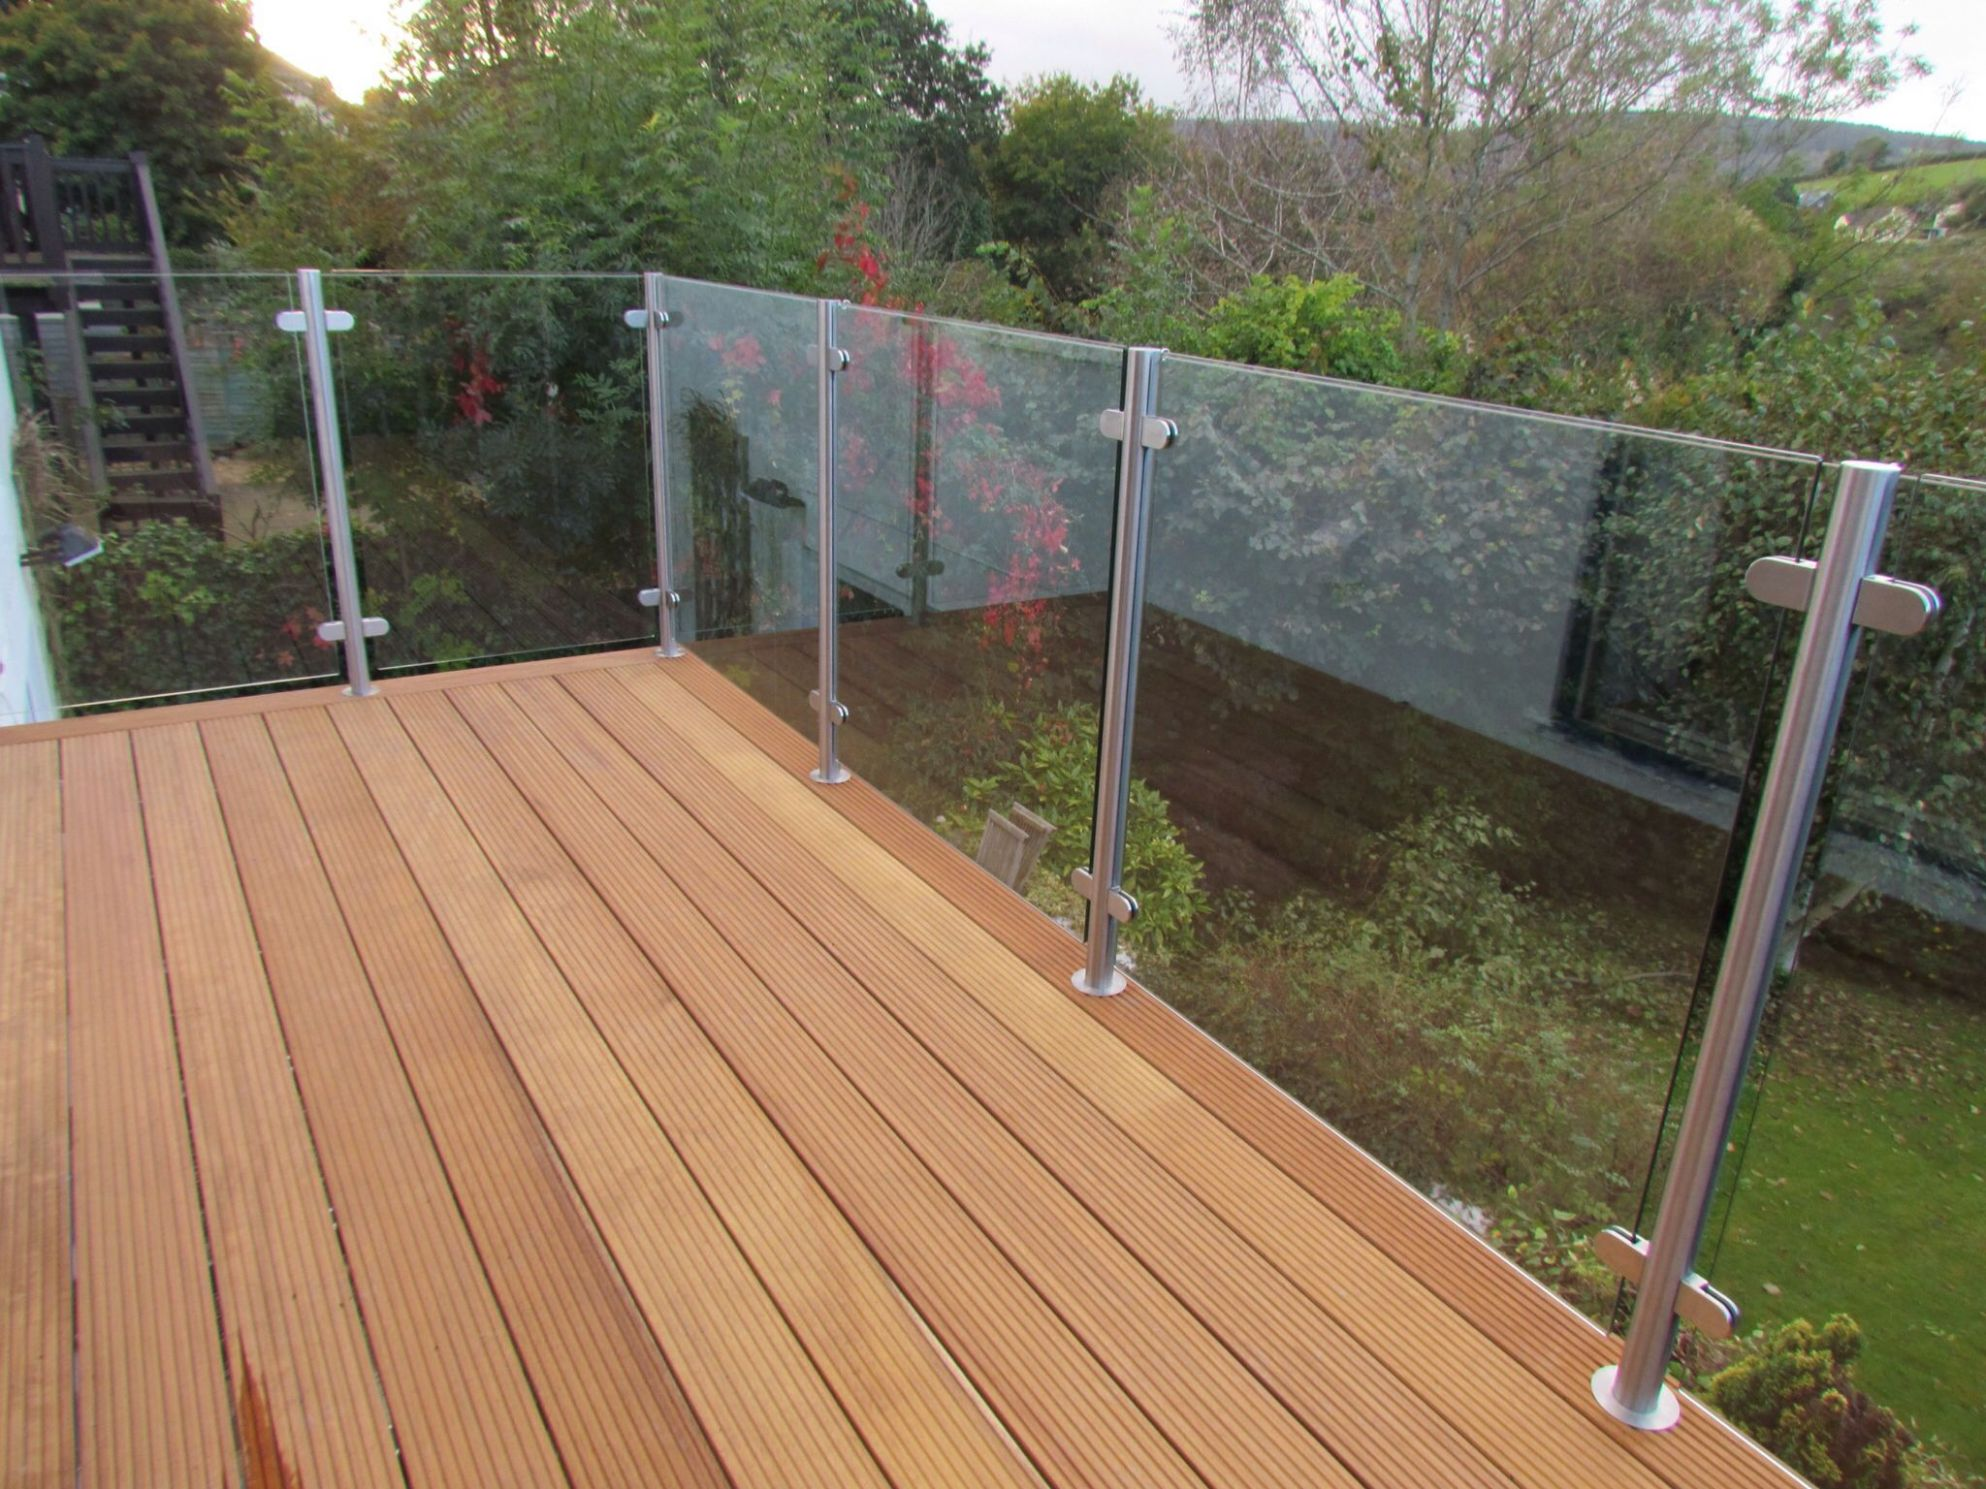 Wooden deck with glass balustrade | Glass balcony, Glass railing ..